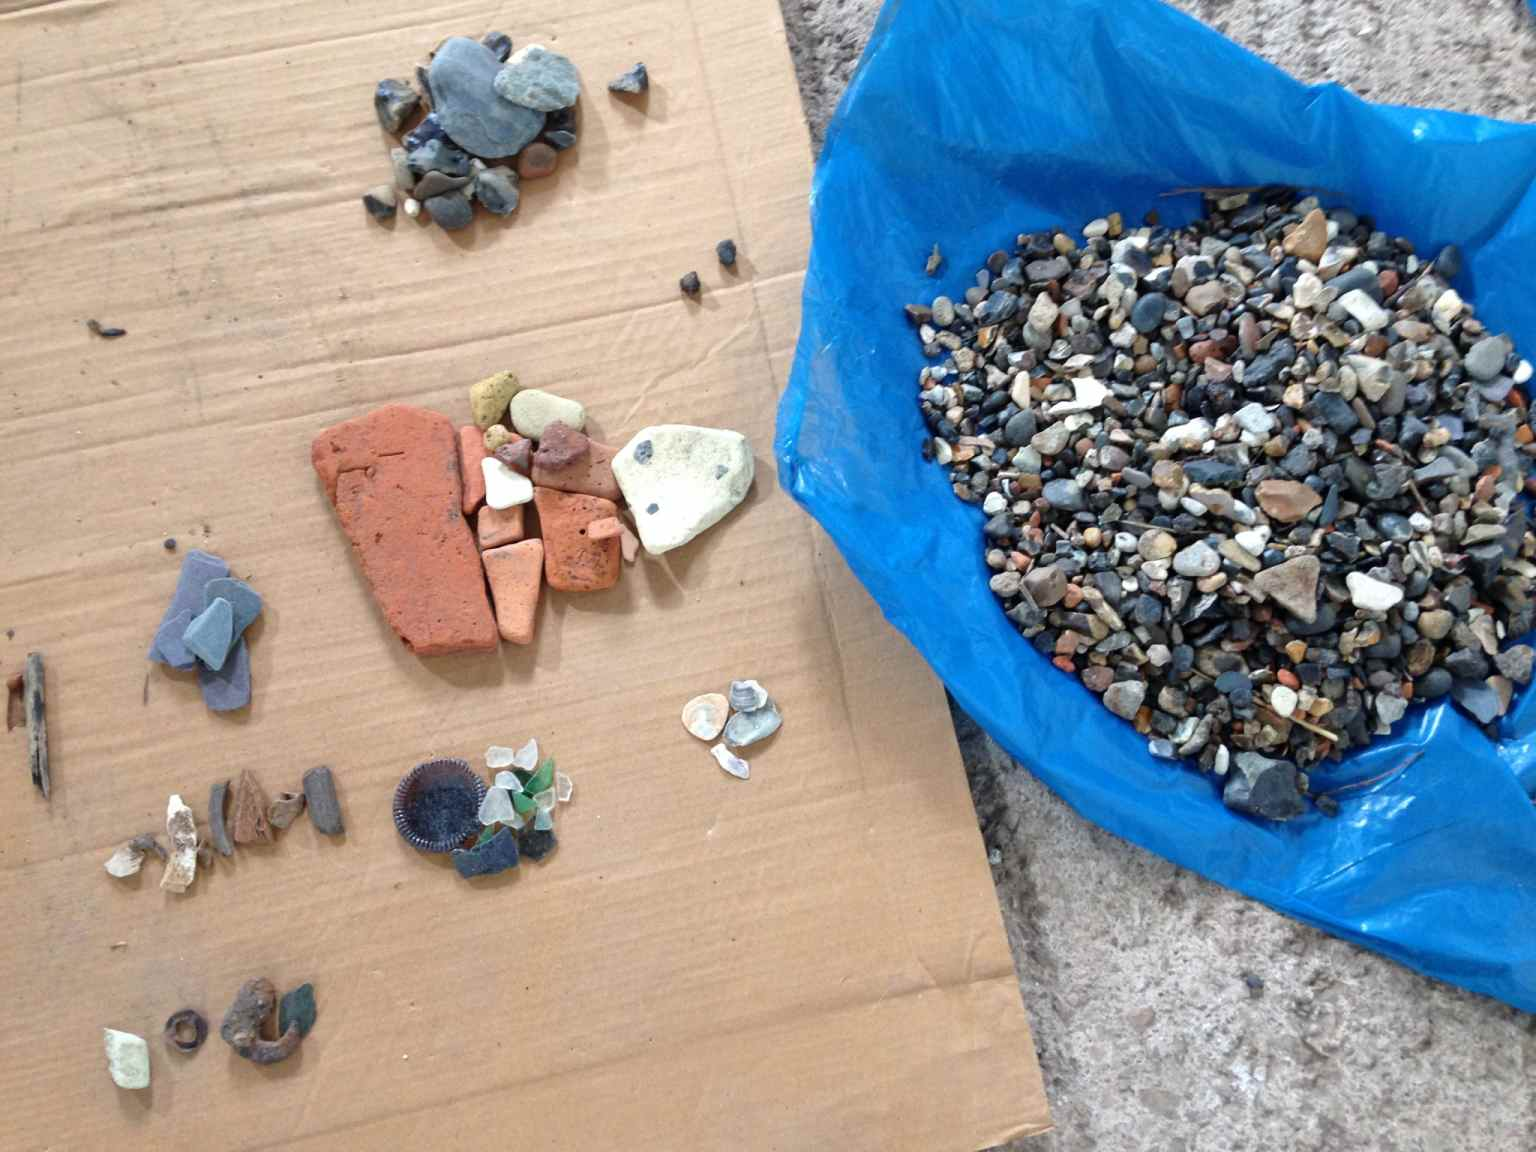 all the material removed from the sand was then sorted in to categories- bone, stone, glass, ceramic, man made, metal natural